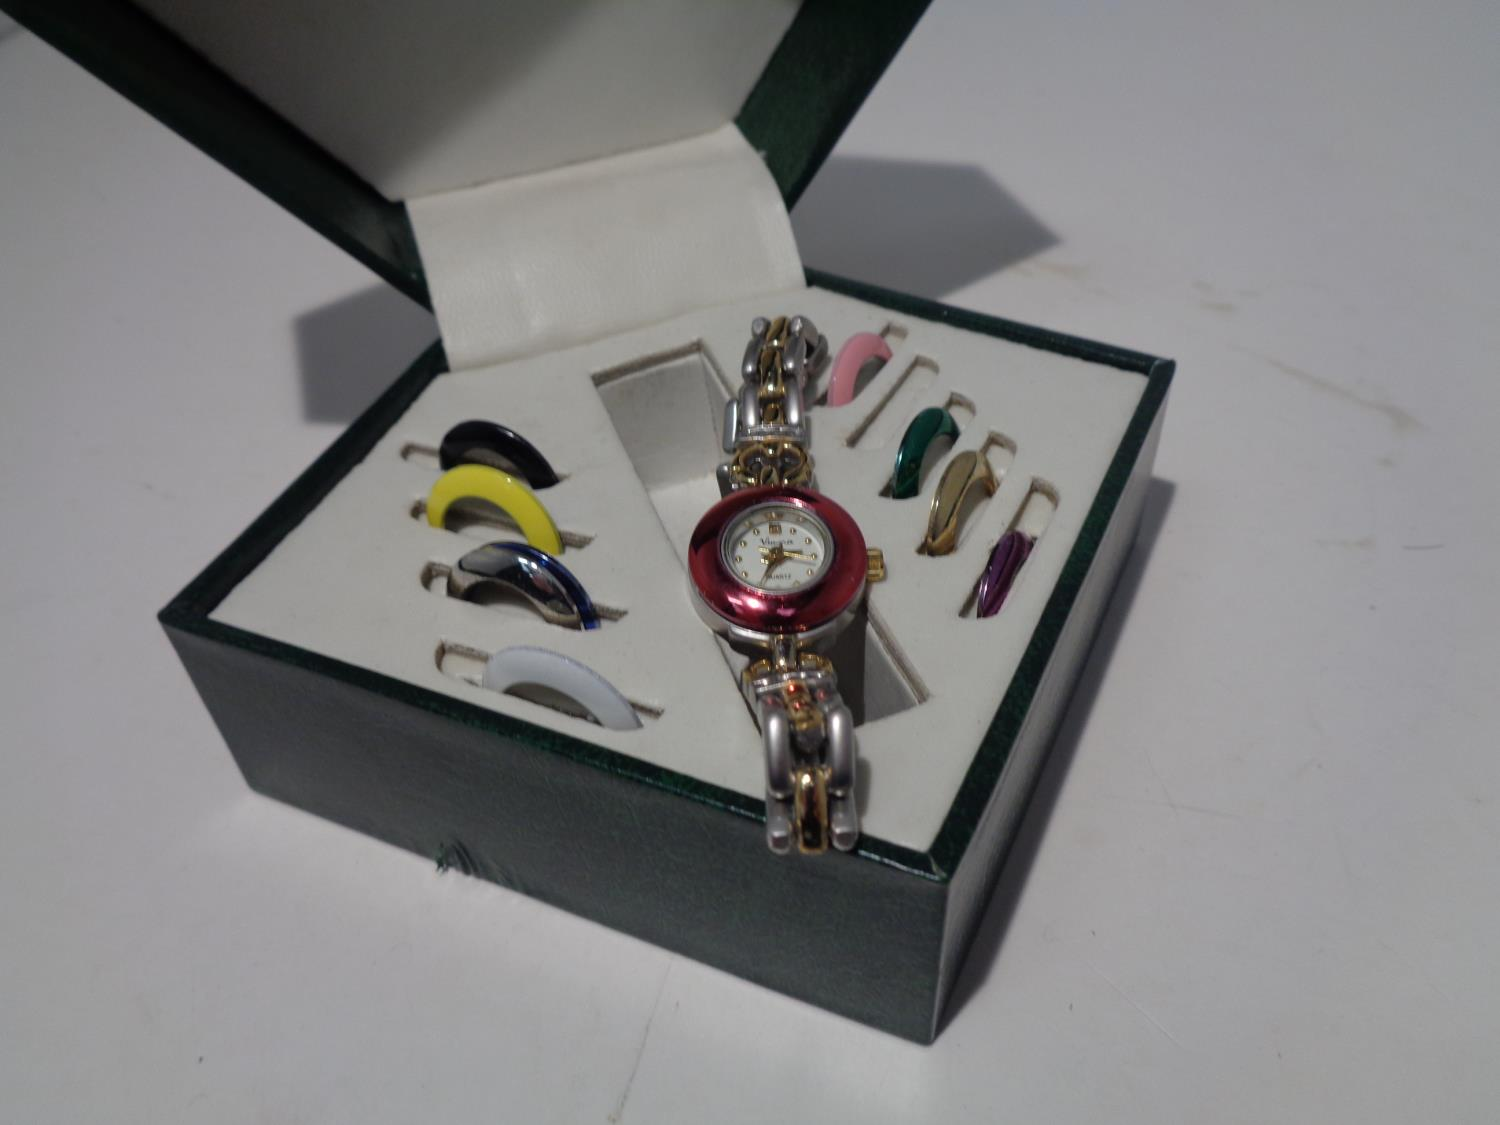 A VIMORA BOXED WATCH WITH COLOURED INTERCHANGEABLE WATCH FACE SURROUNDINGS - Image 6 of 6